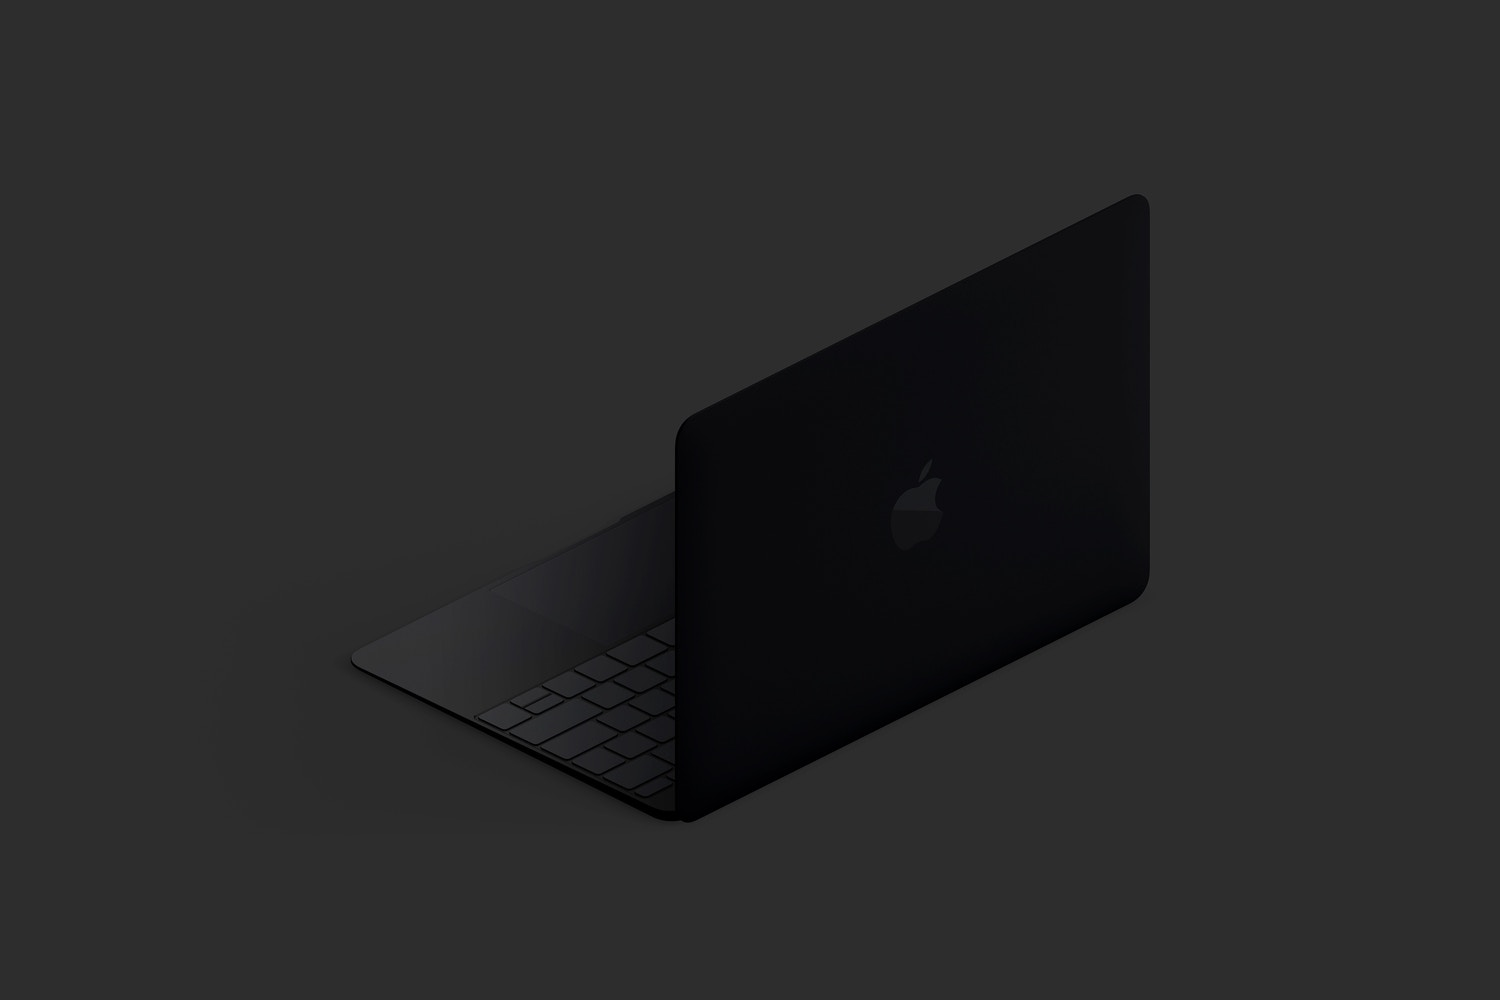 Clay MacBook Mockup, Isometric Back Right View (5) by Original Mockups on Original Mockups